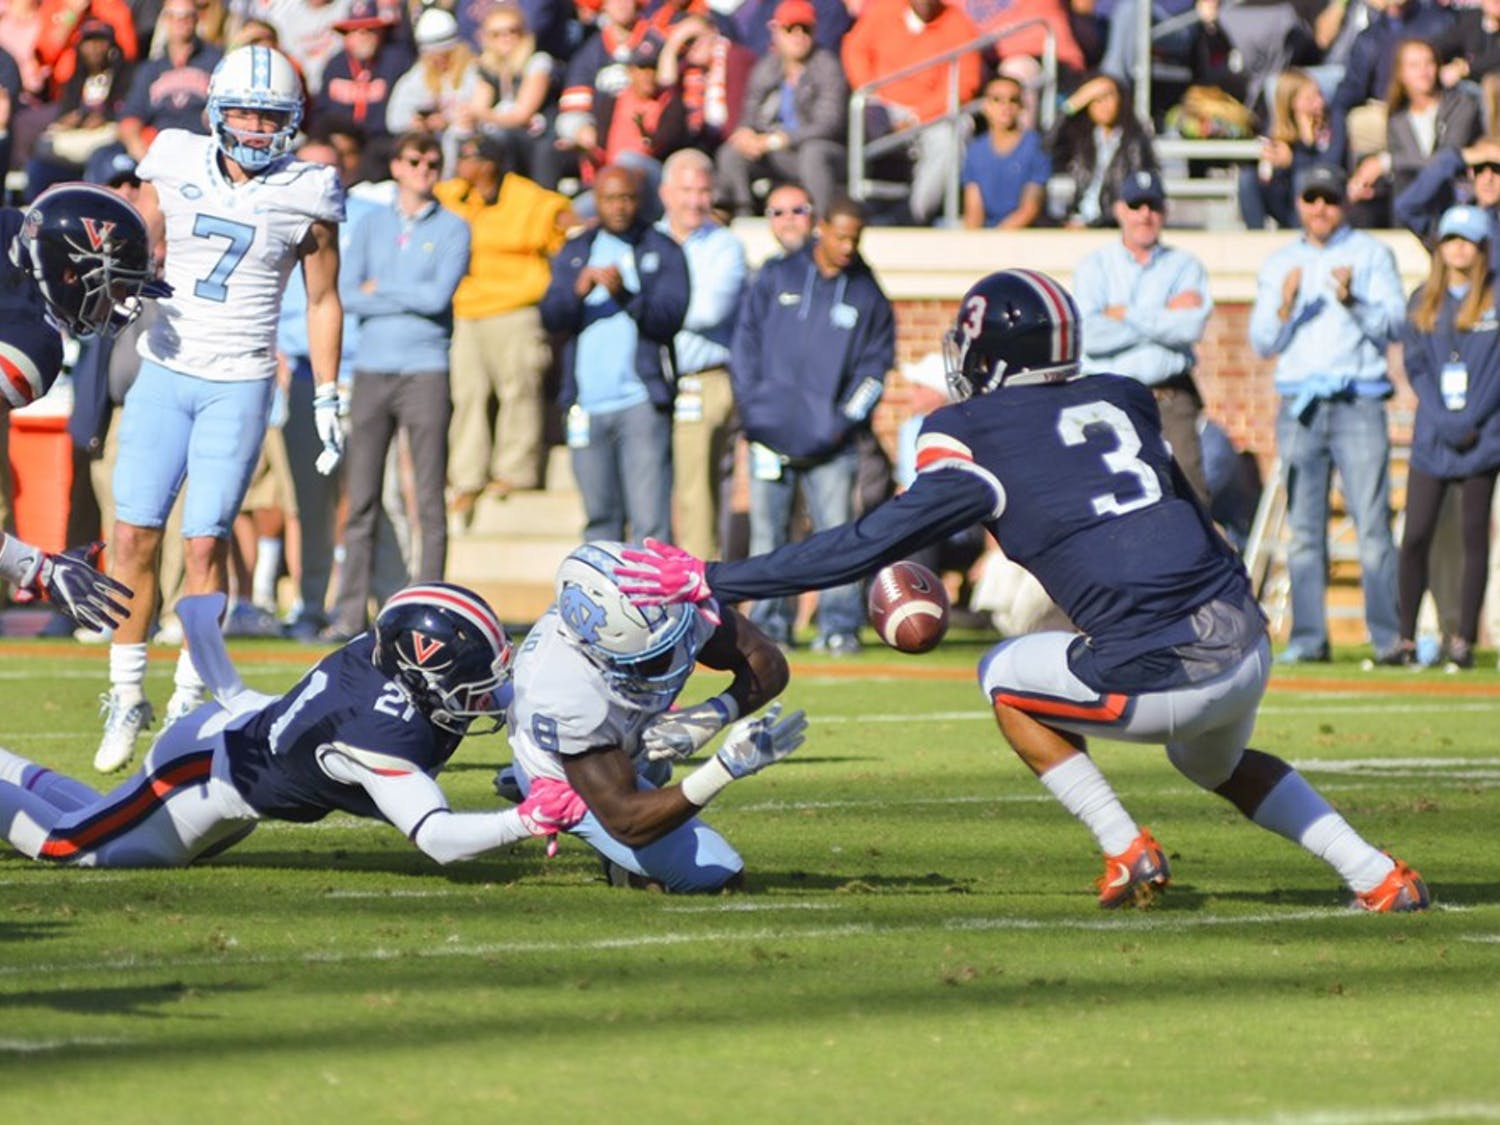 The Tar Heels defeated the Cavaliers 35-14 on Saturday.